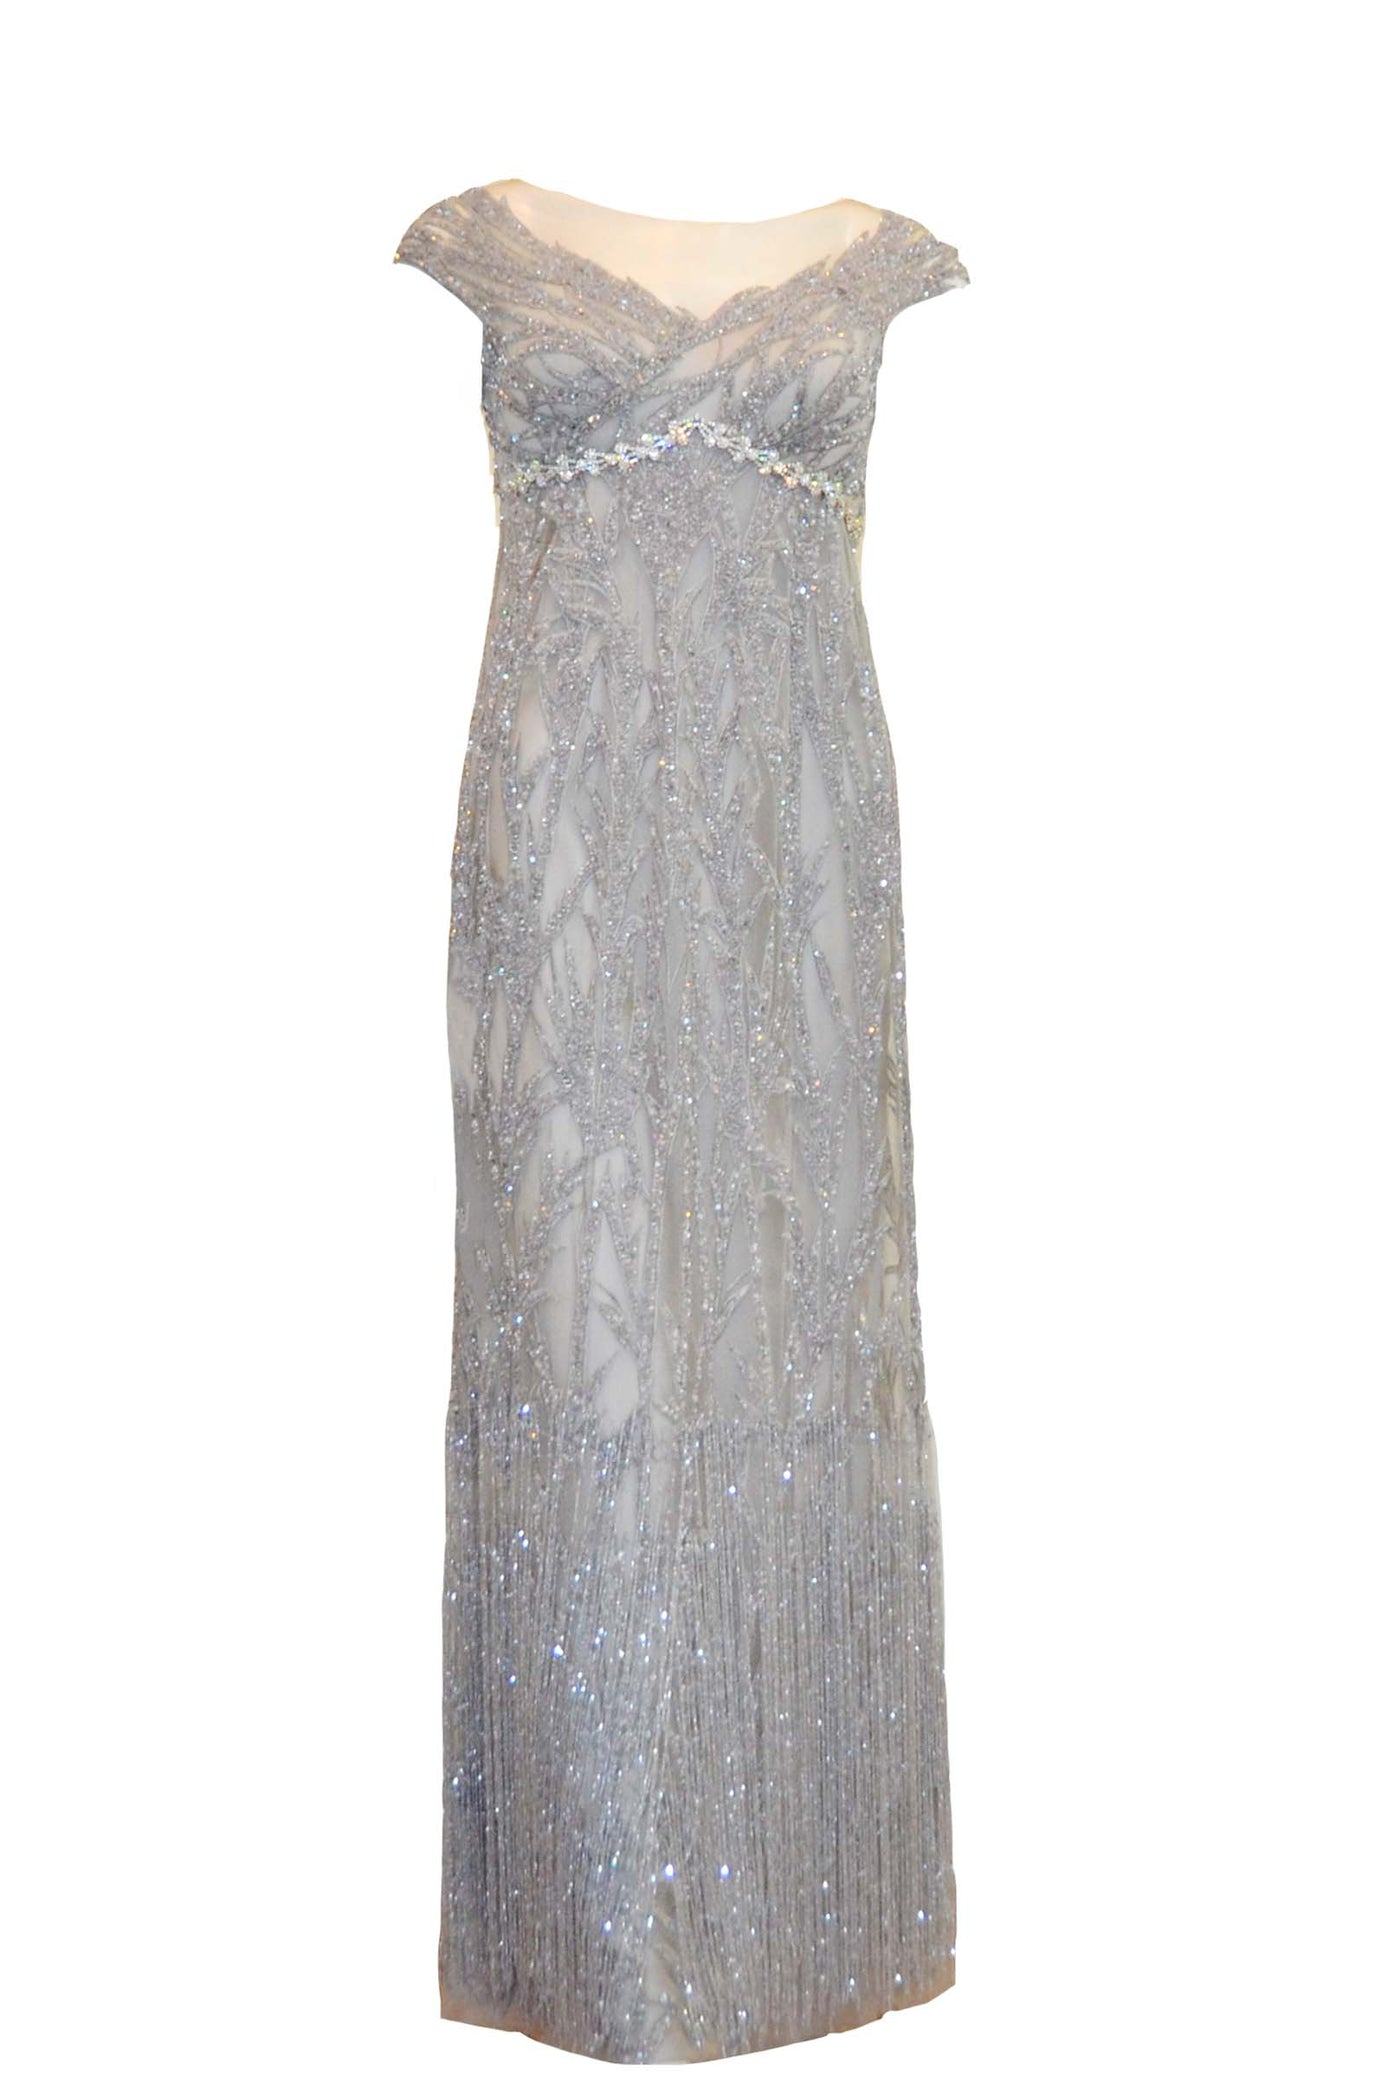 Sale: Anrini Polim Silver V-Neck Sleeveless Fully Beaded Gown